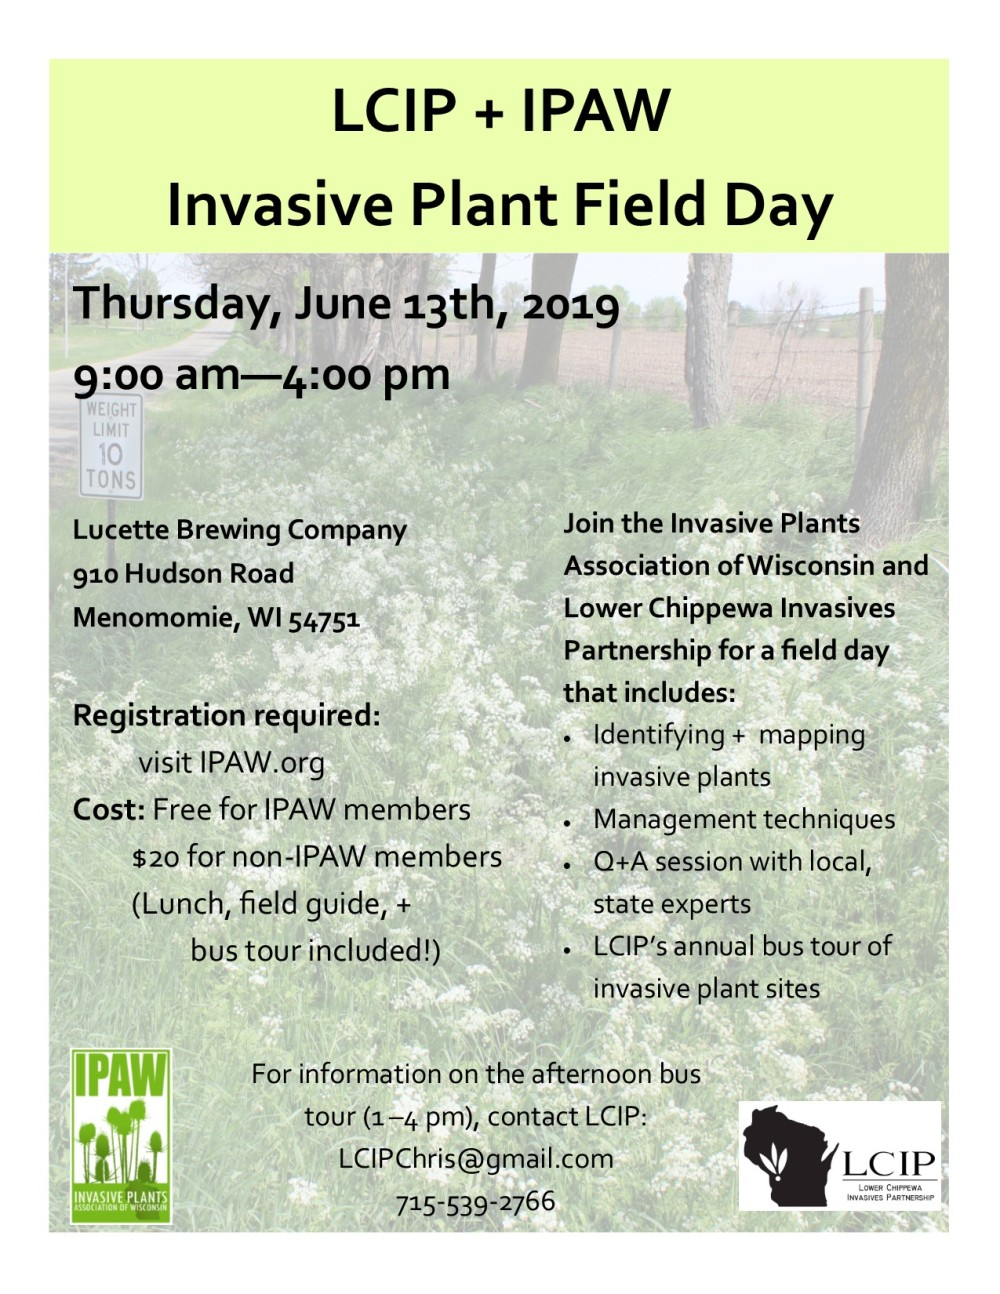 2019 IPAW LCIP Field Day